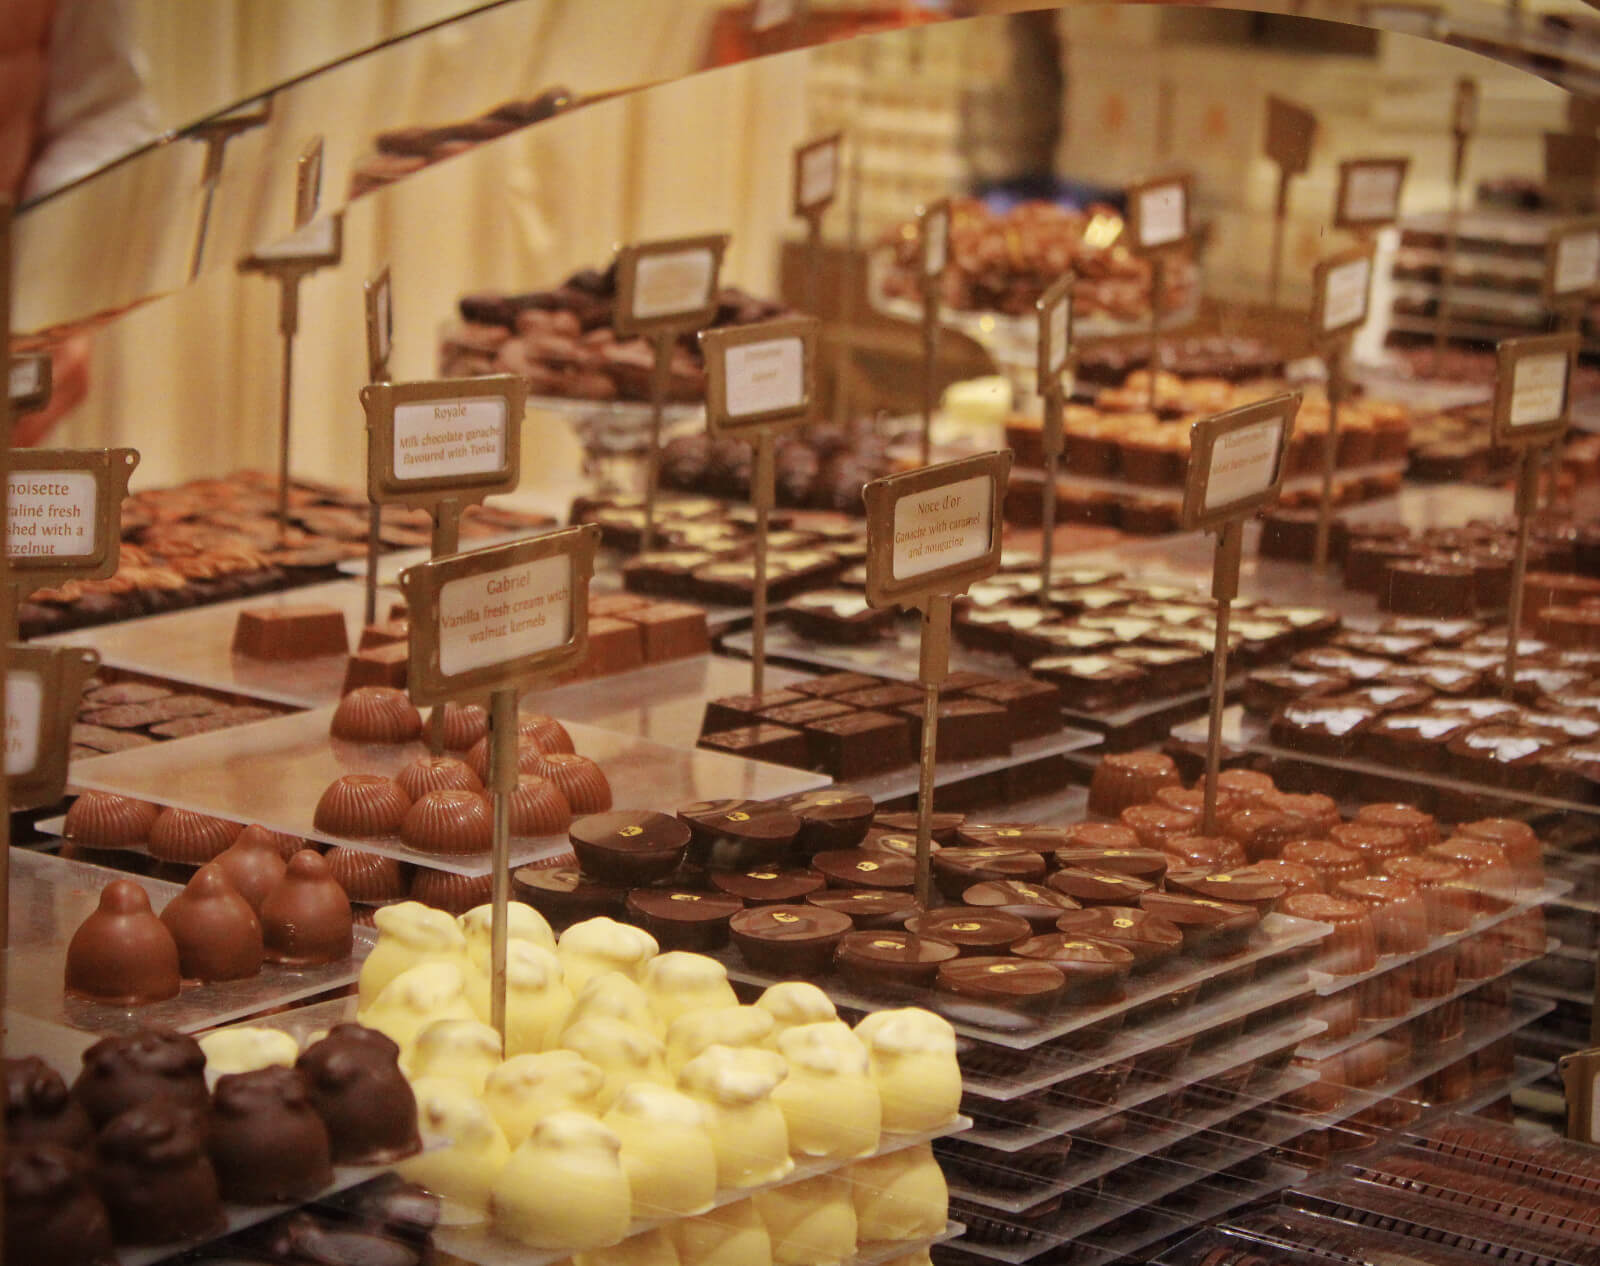 Chocolates at Mary Chocolatier in Brussels, Belgium.